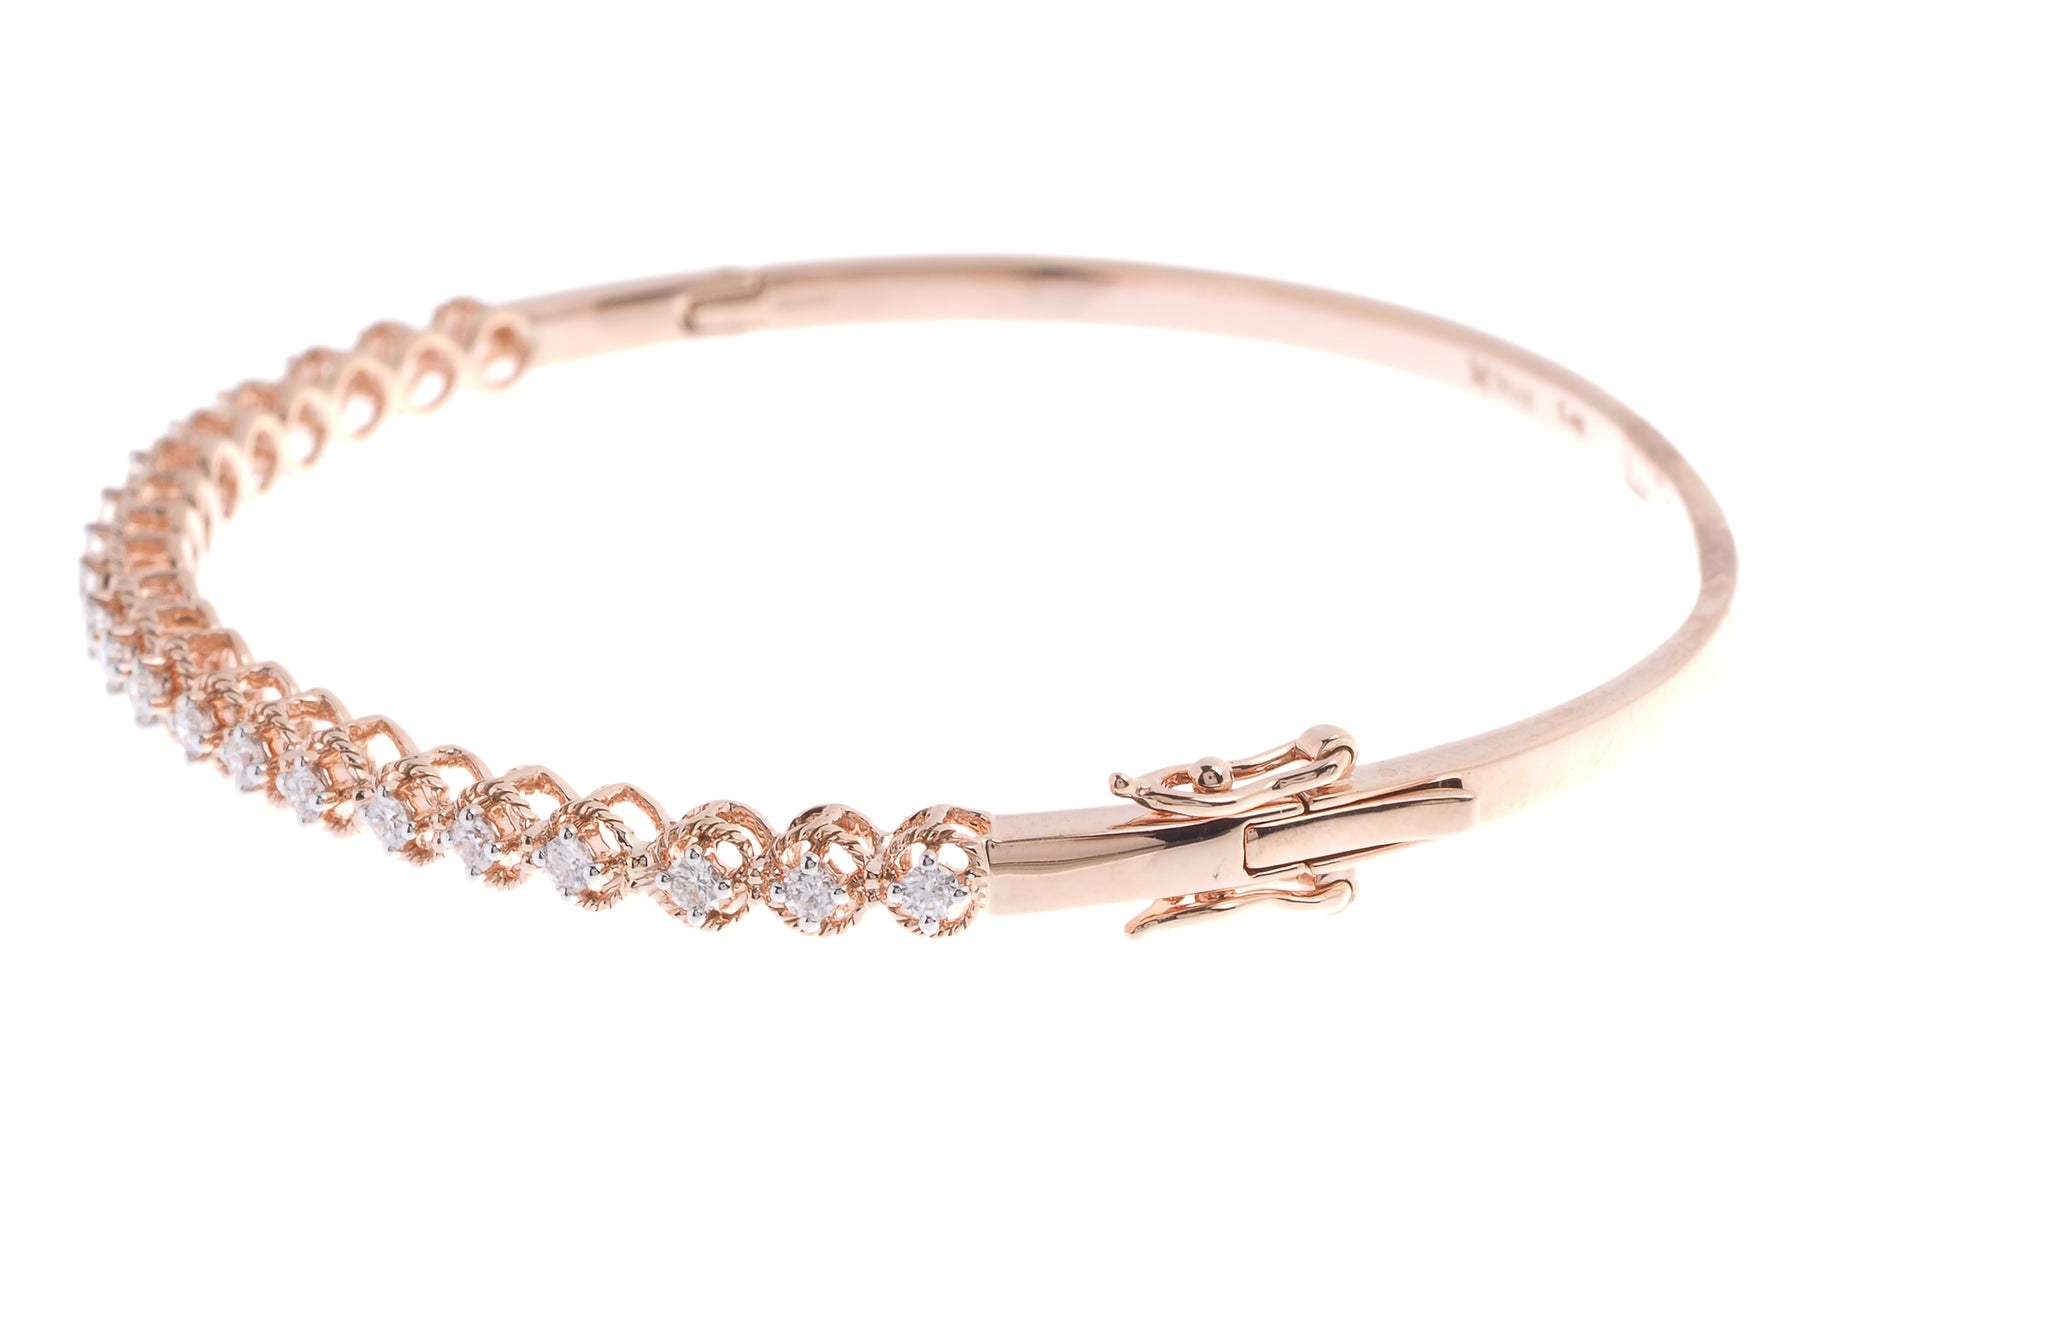 18ct Rose Gold Diamond Bangle with clasp (MCS2720)